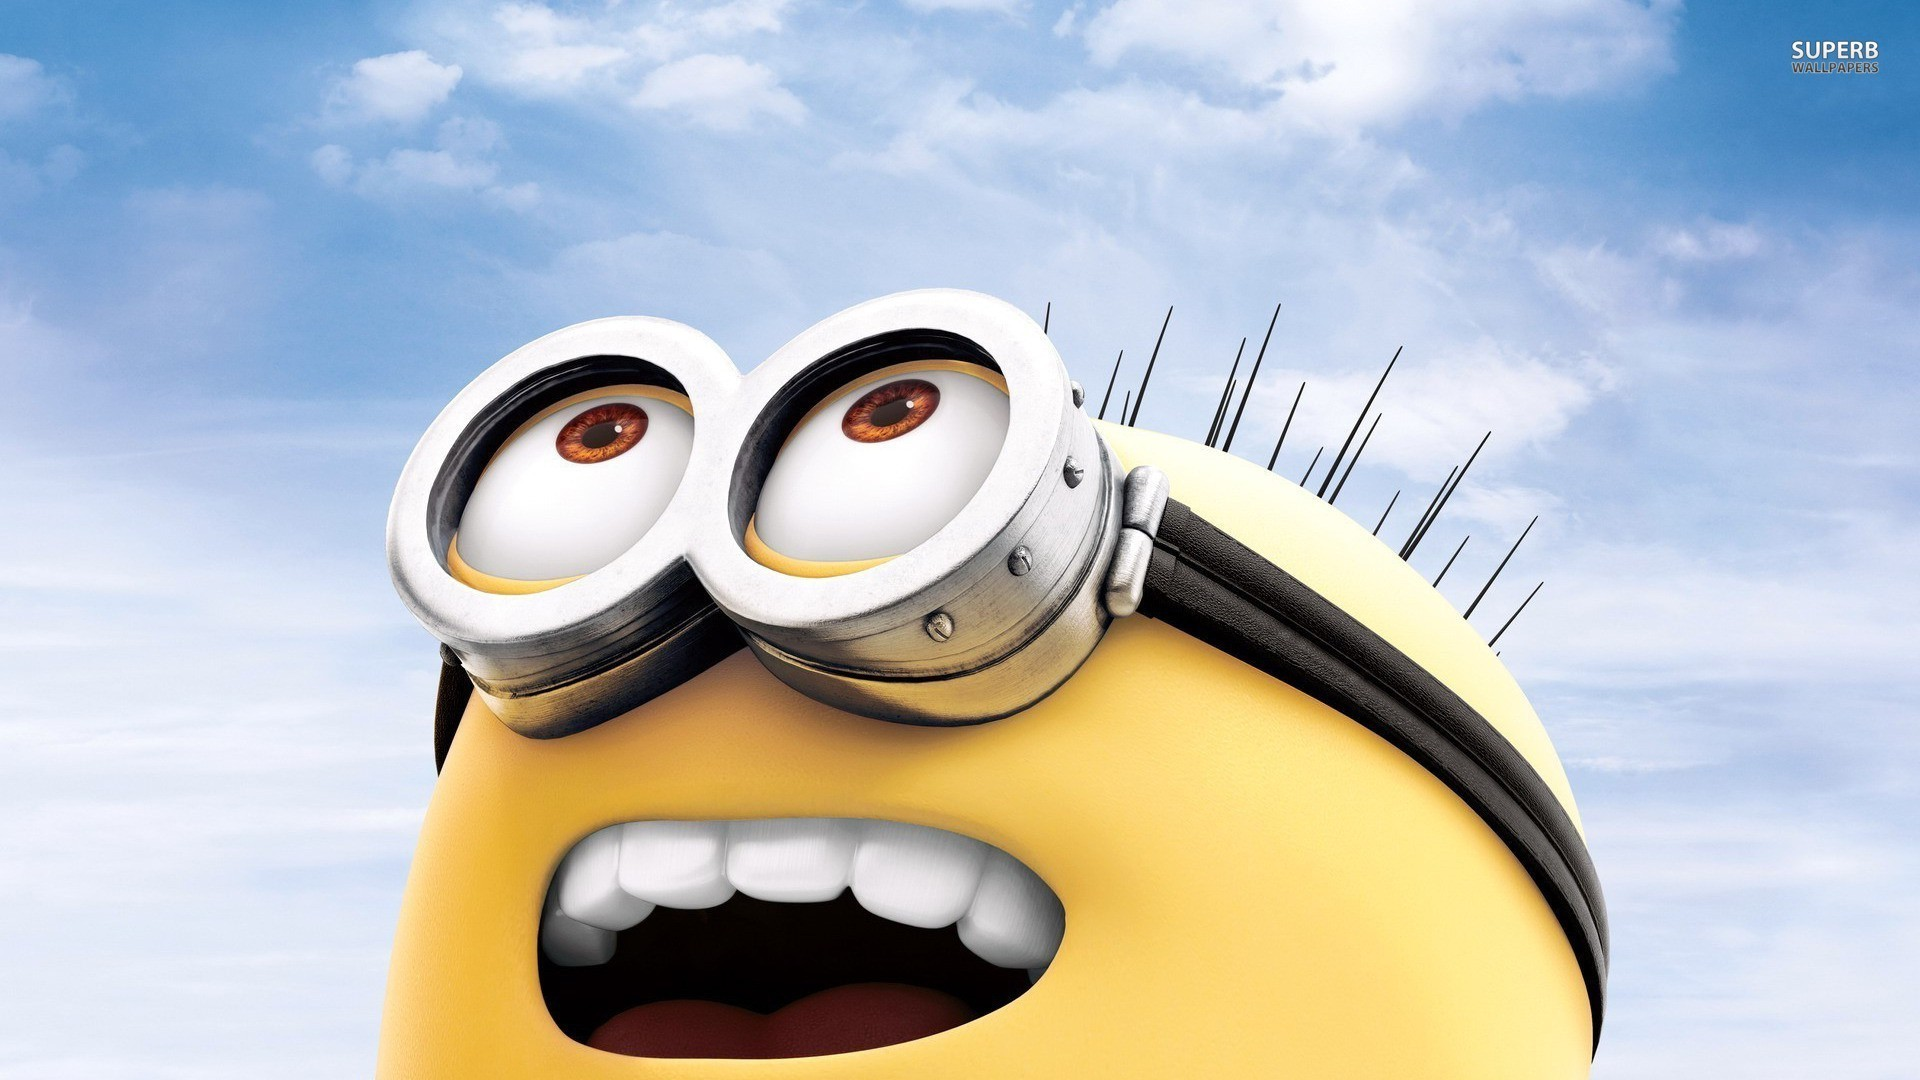 1920x1080 minion iphone wallpaper hd - photo #9. I Refuse to Believe This Rumor About  the iPhone With No